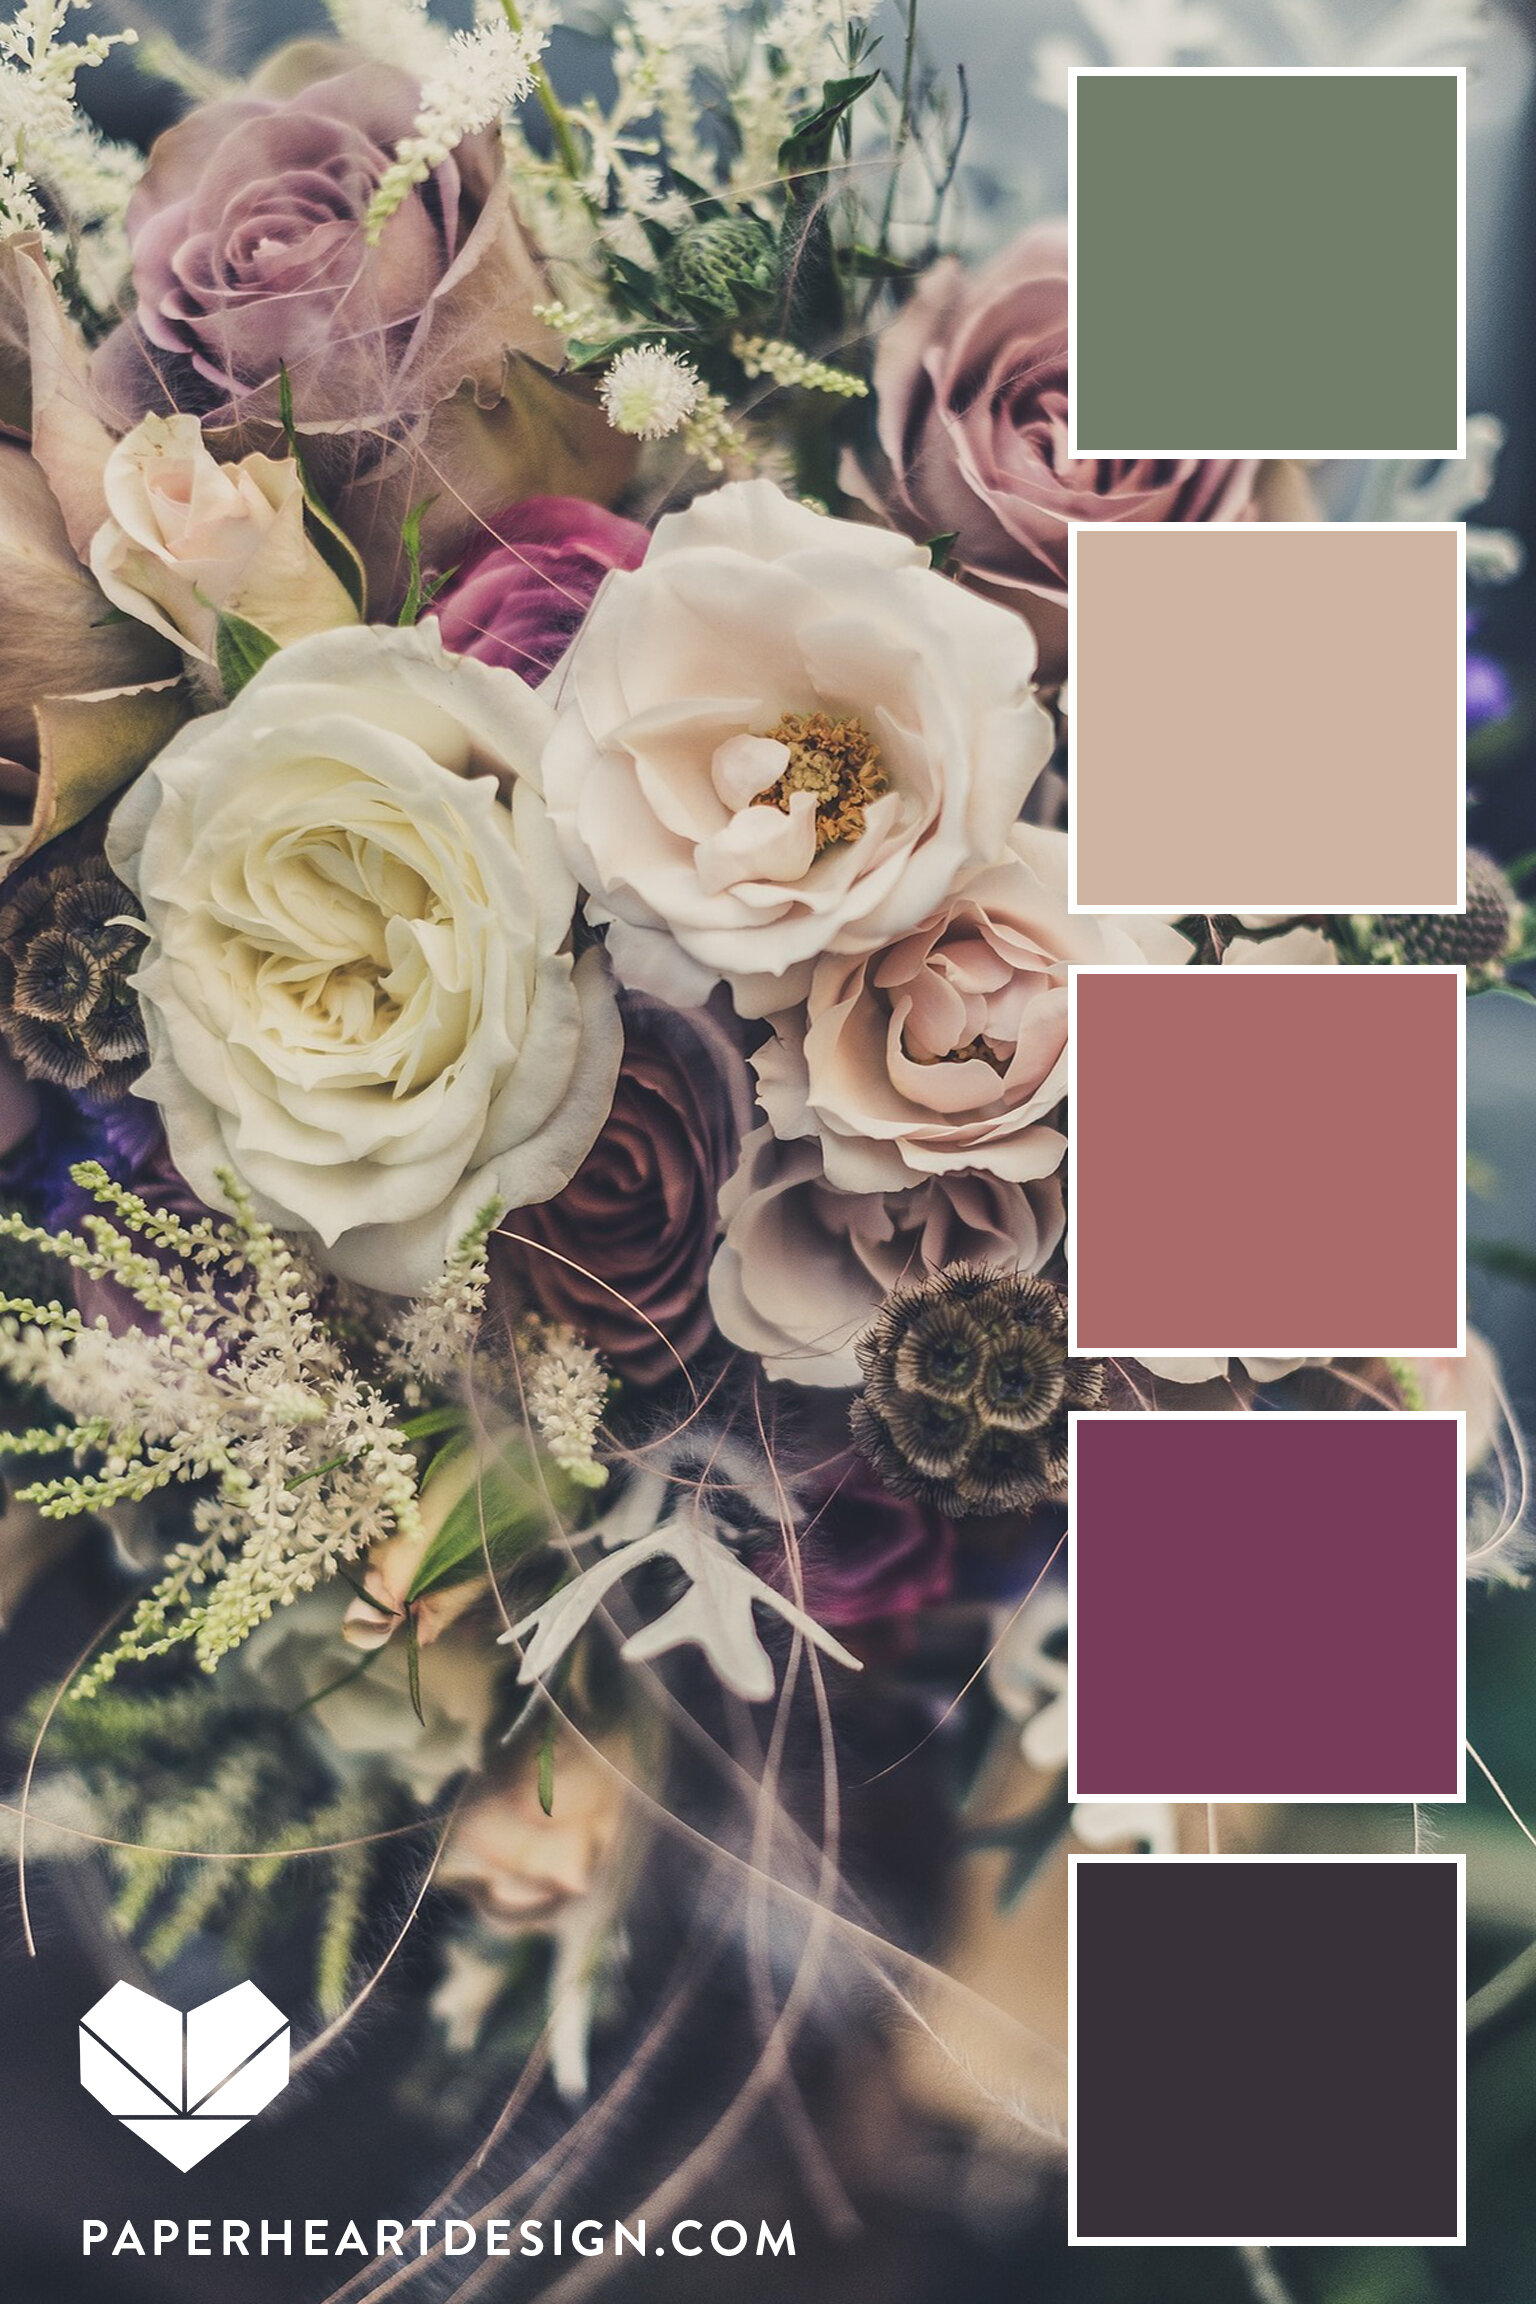 I can't get enough of these dusty, muted hues!